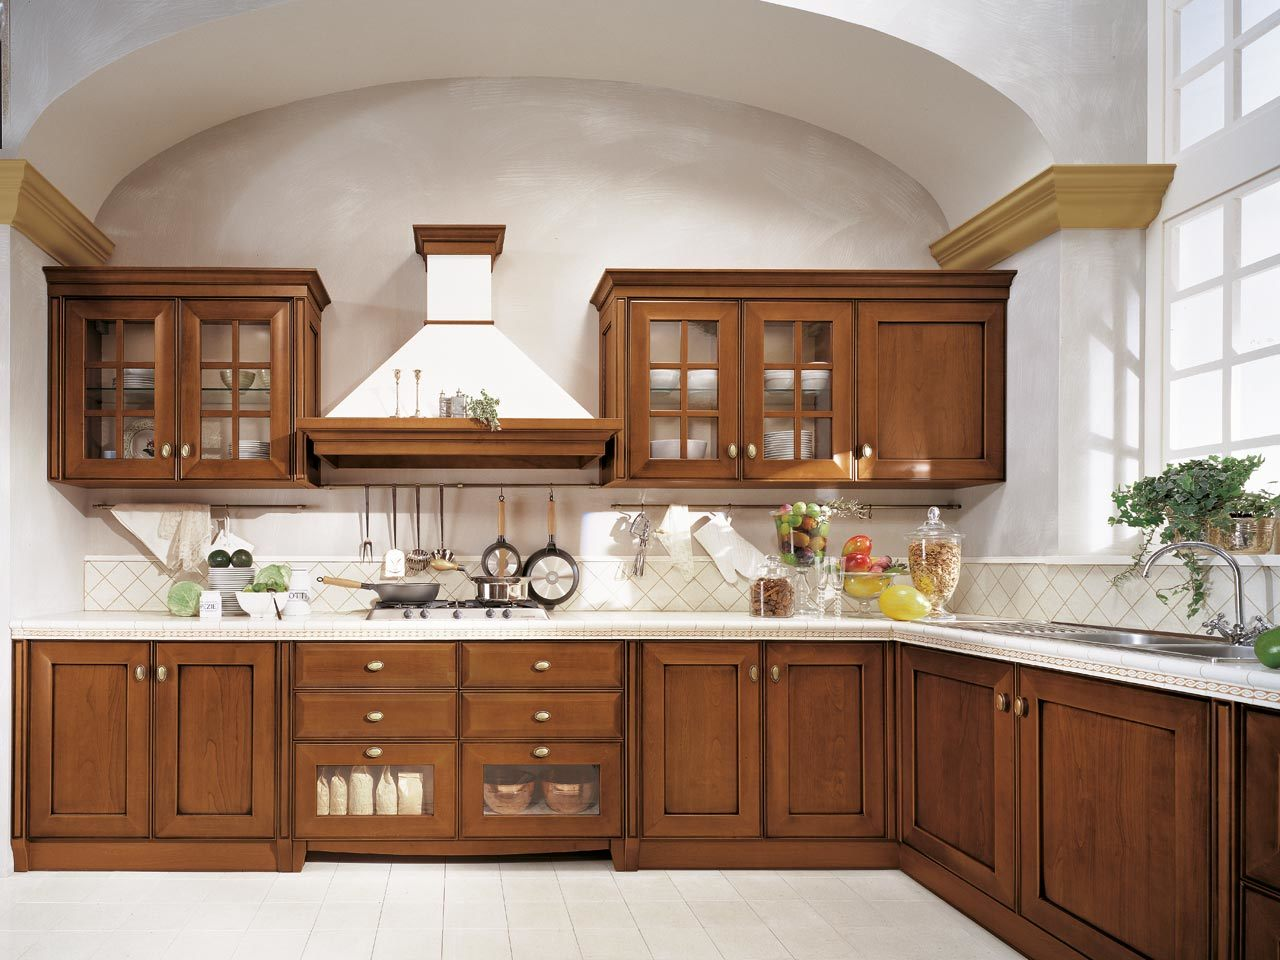 China Antique Kitchen Cabinets Solid Wood Italian Kitchen Furniture China Solid Wood Kitchen Cabinet Cherry Kitchen Cabinet